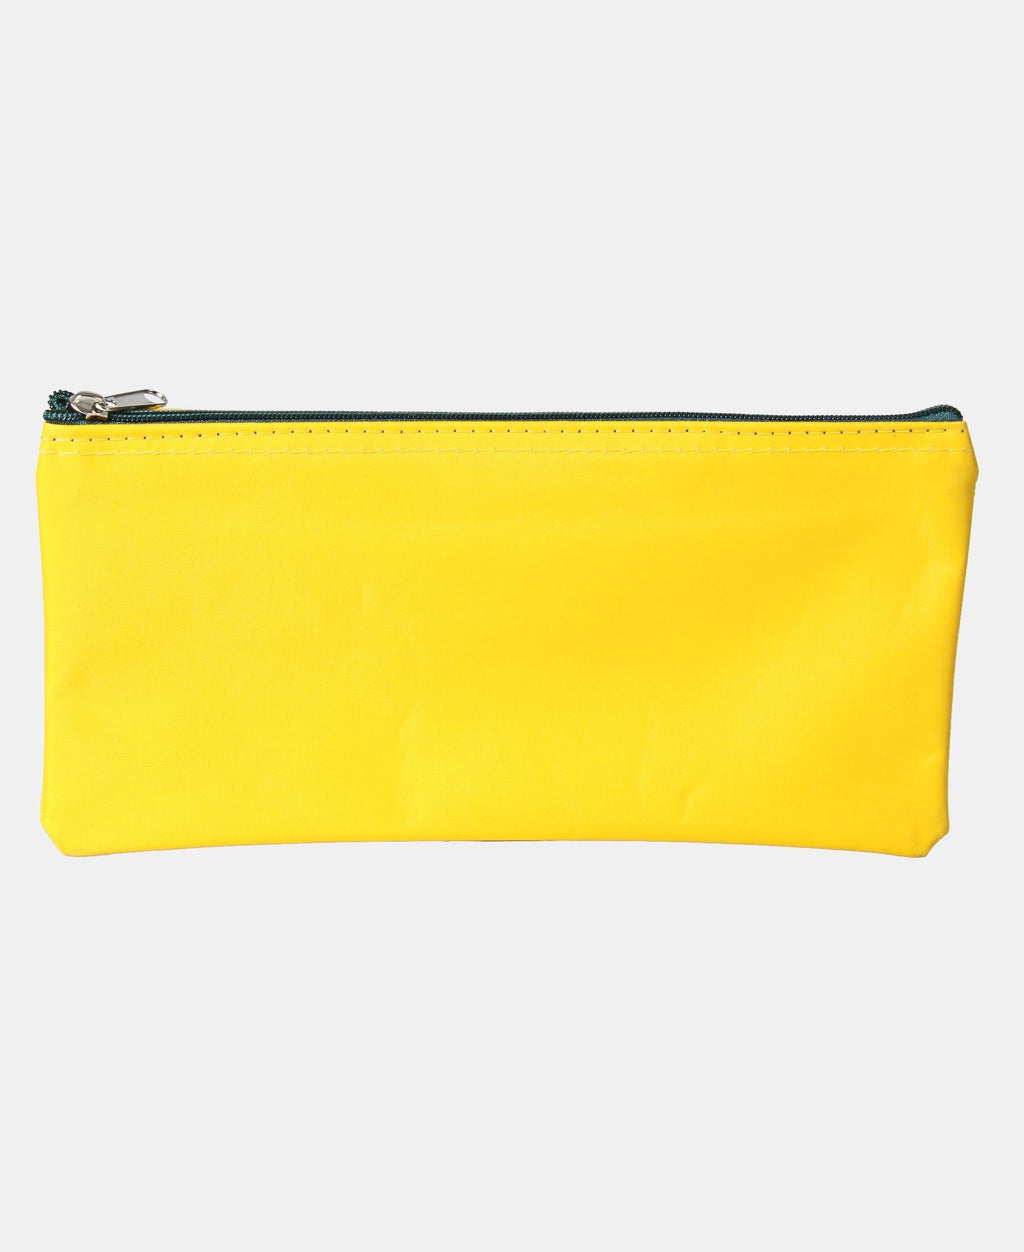 Econo 22Cm Nylon Pencil Case - Yellow